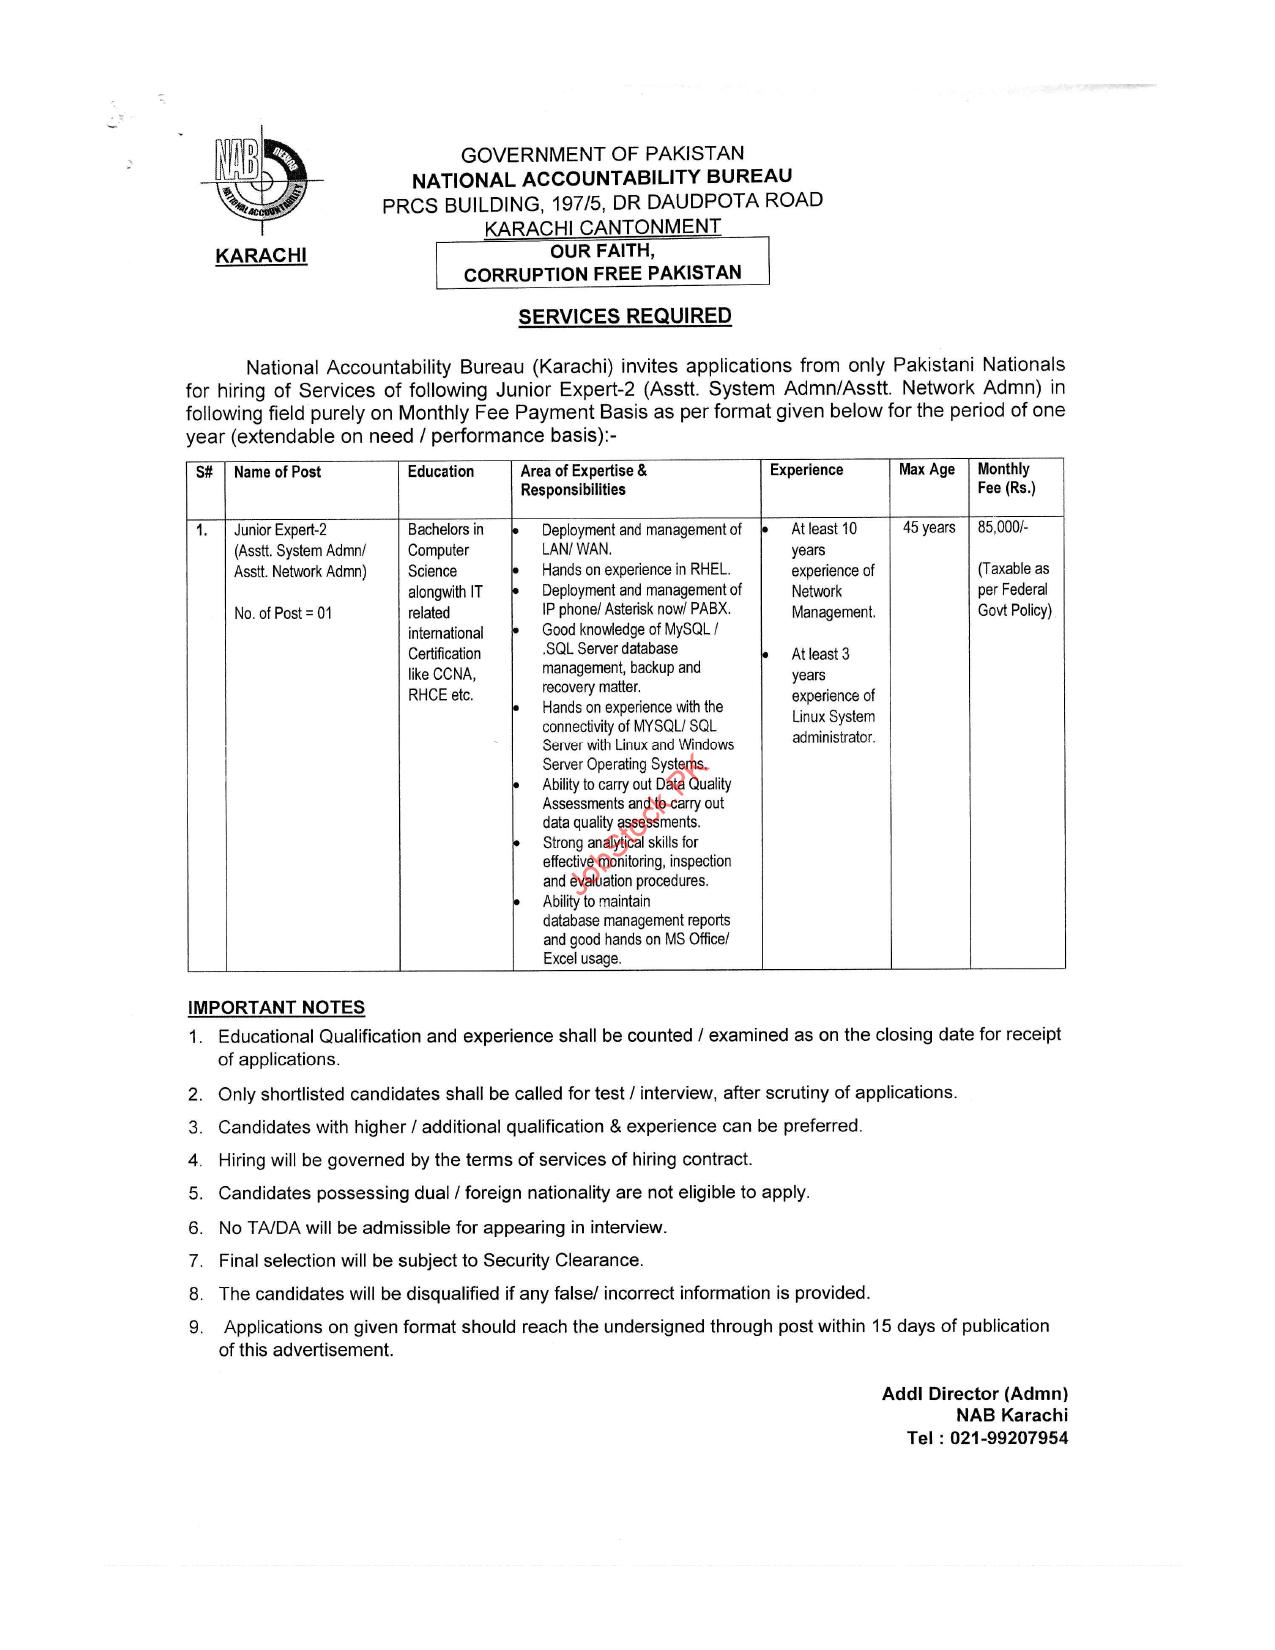 Nab Karachi Jobs 2021 Advertisement